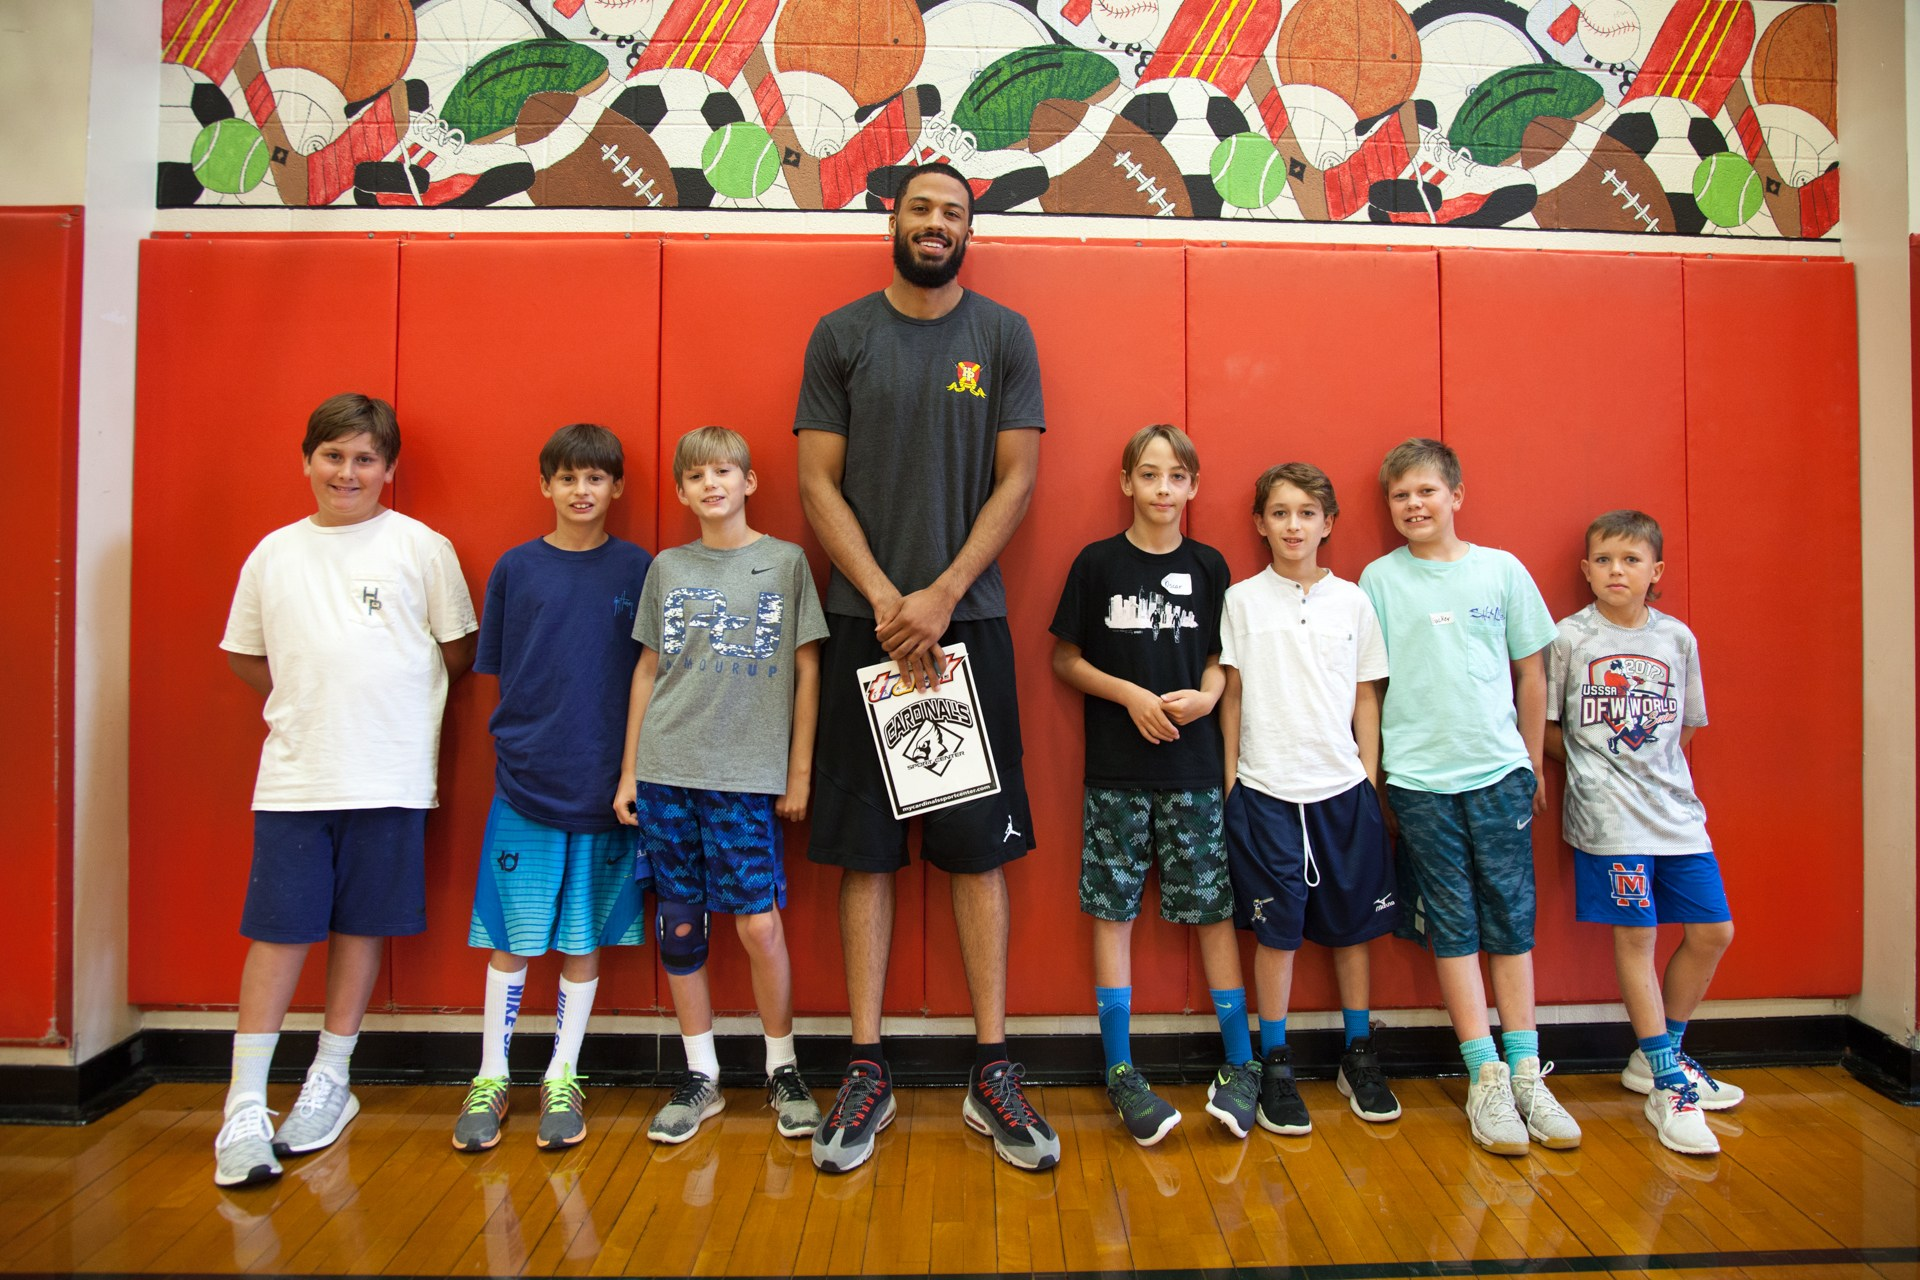 Elementary students smile for a photo with their PE coach in the gymnasium.